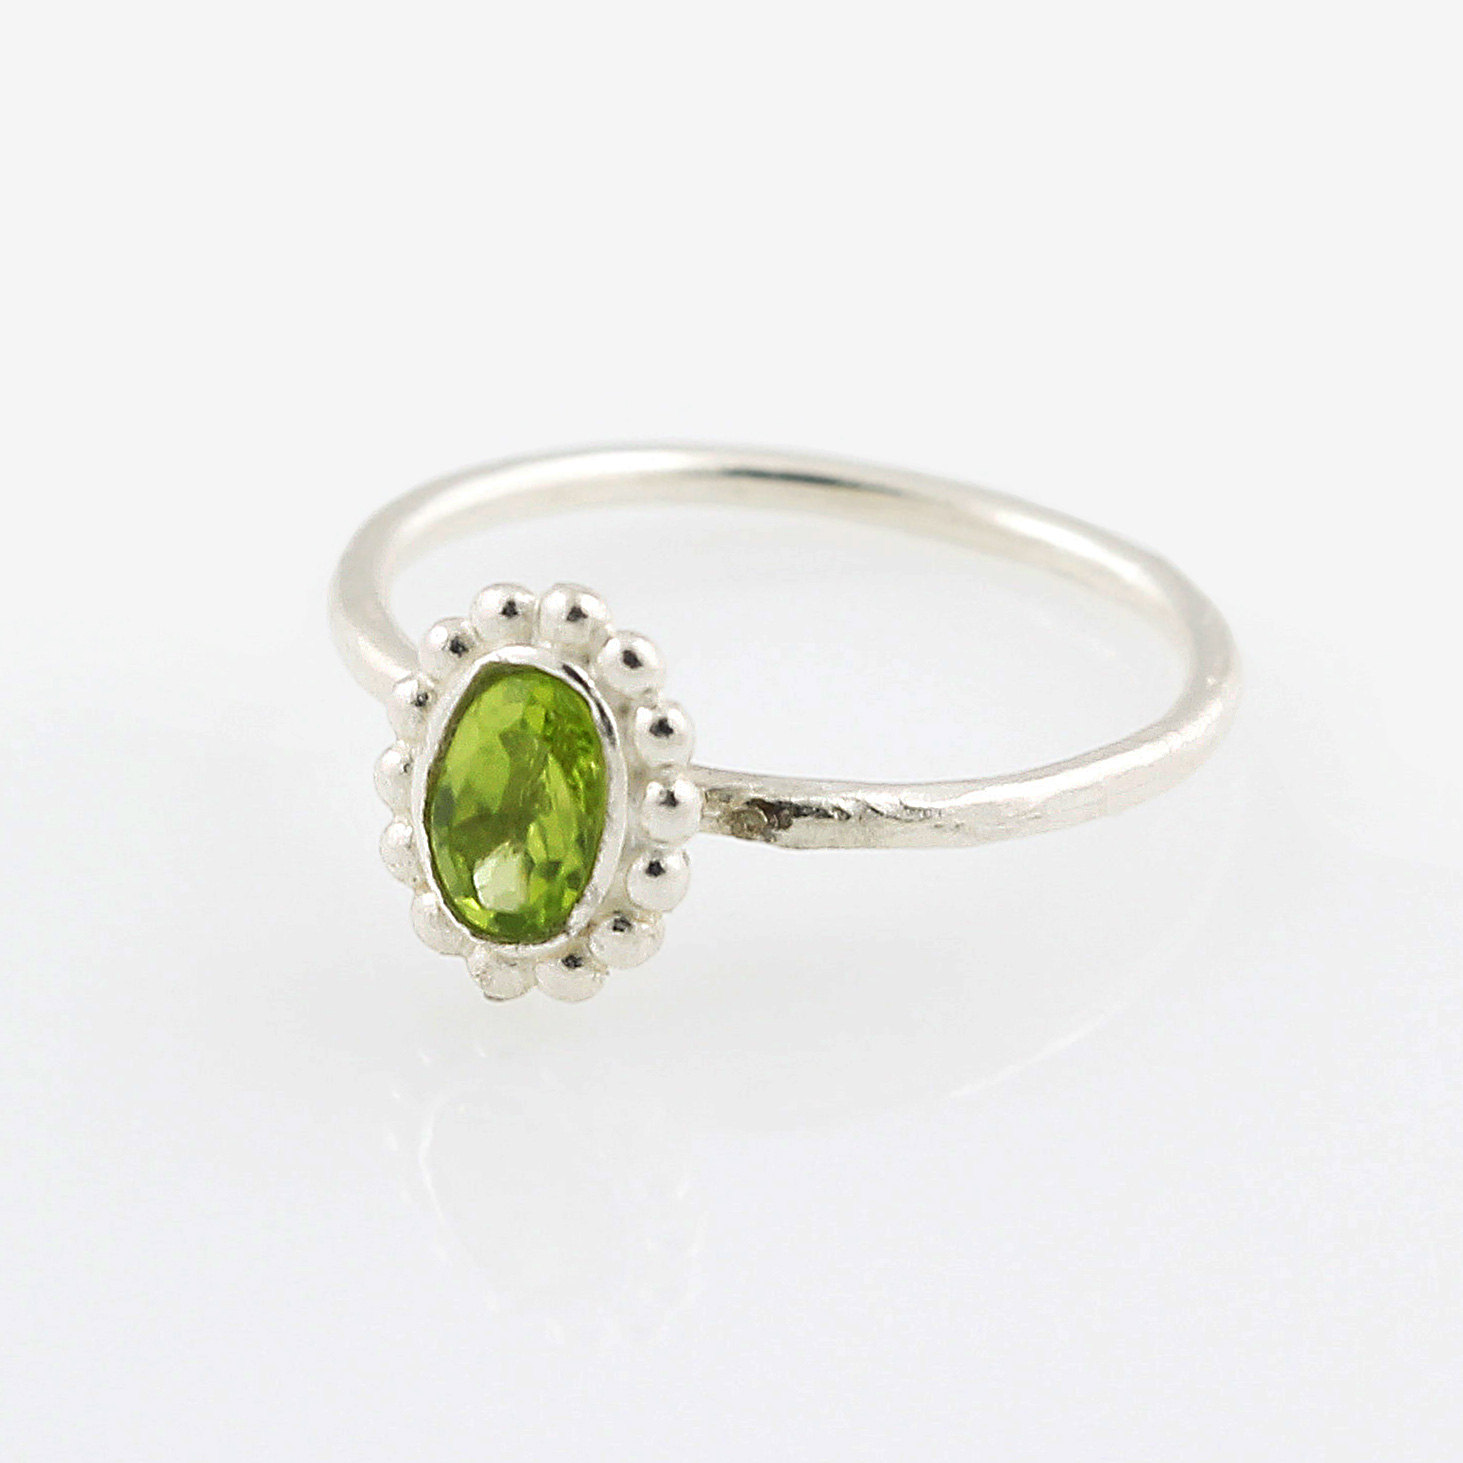 317faf4f306e5 925 sterling silver Beautiful delicate Natural Peridot ring, Stackable  Ring, stacking, august birthstone, birthstone rings